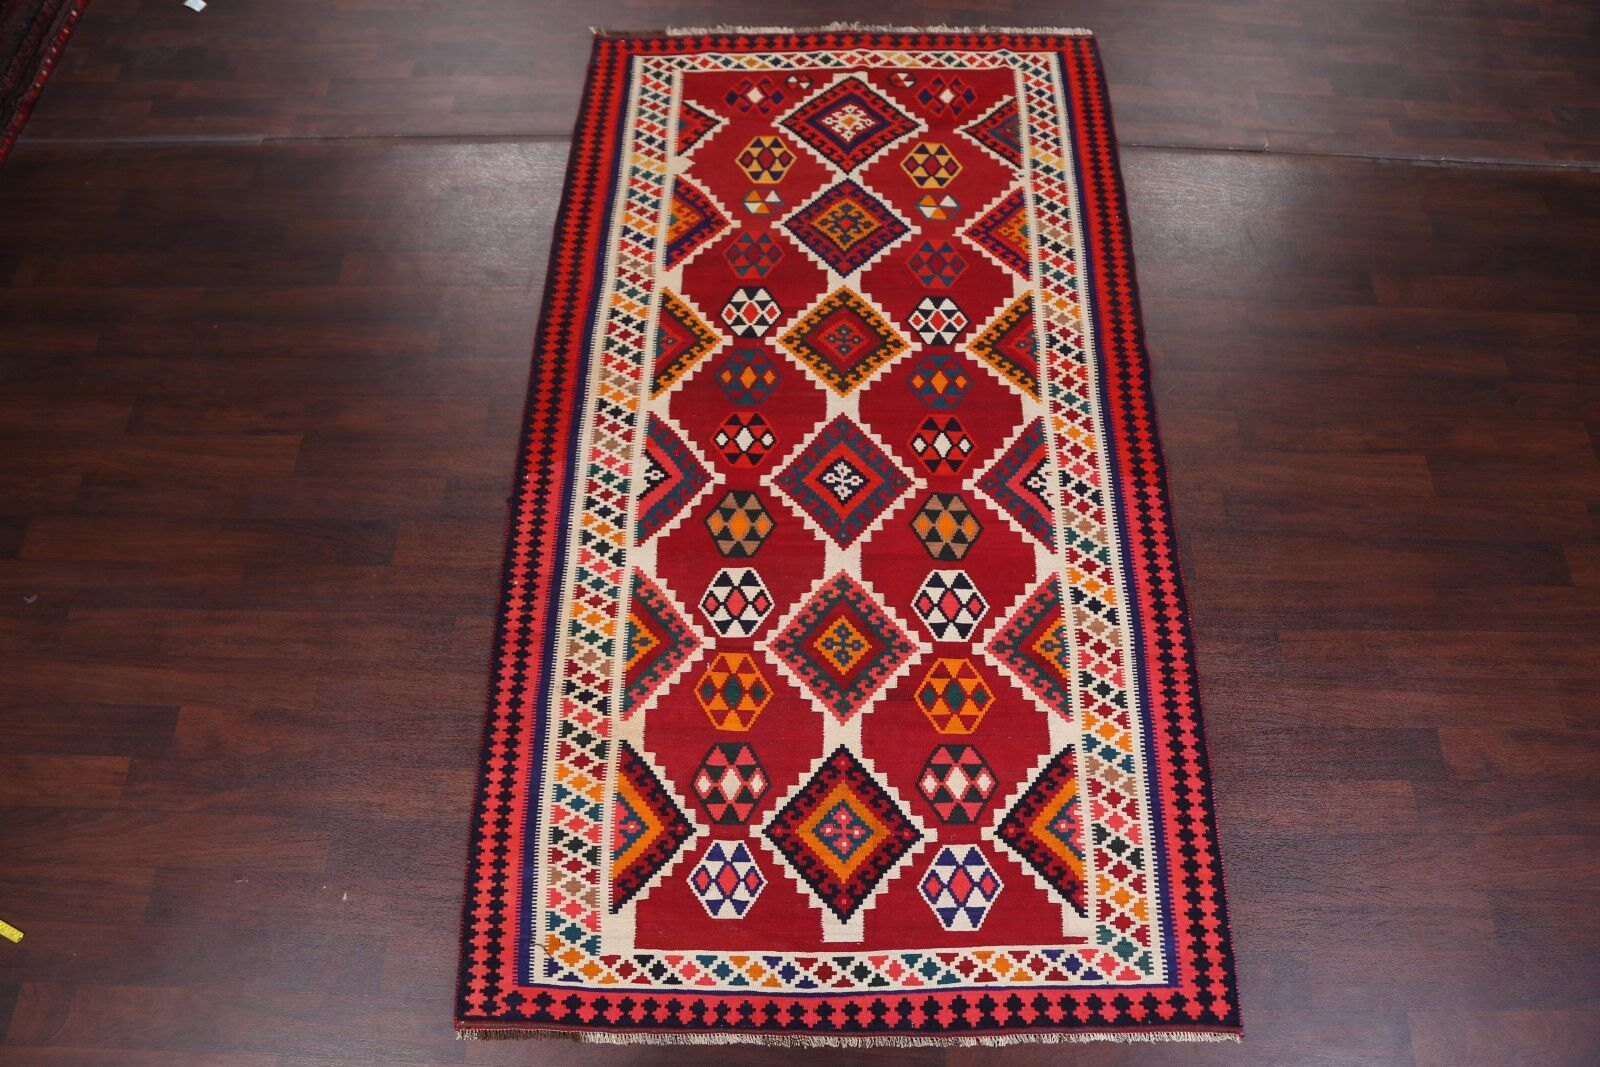 One-of-a-Kind Kilim Ghashghaei Persian Traditional Hand-Knotted 5'6